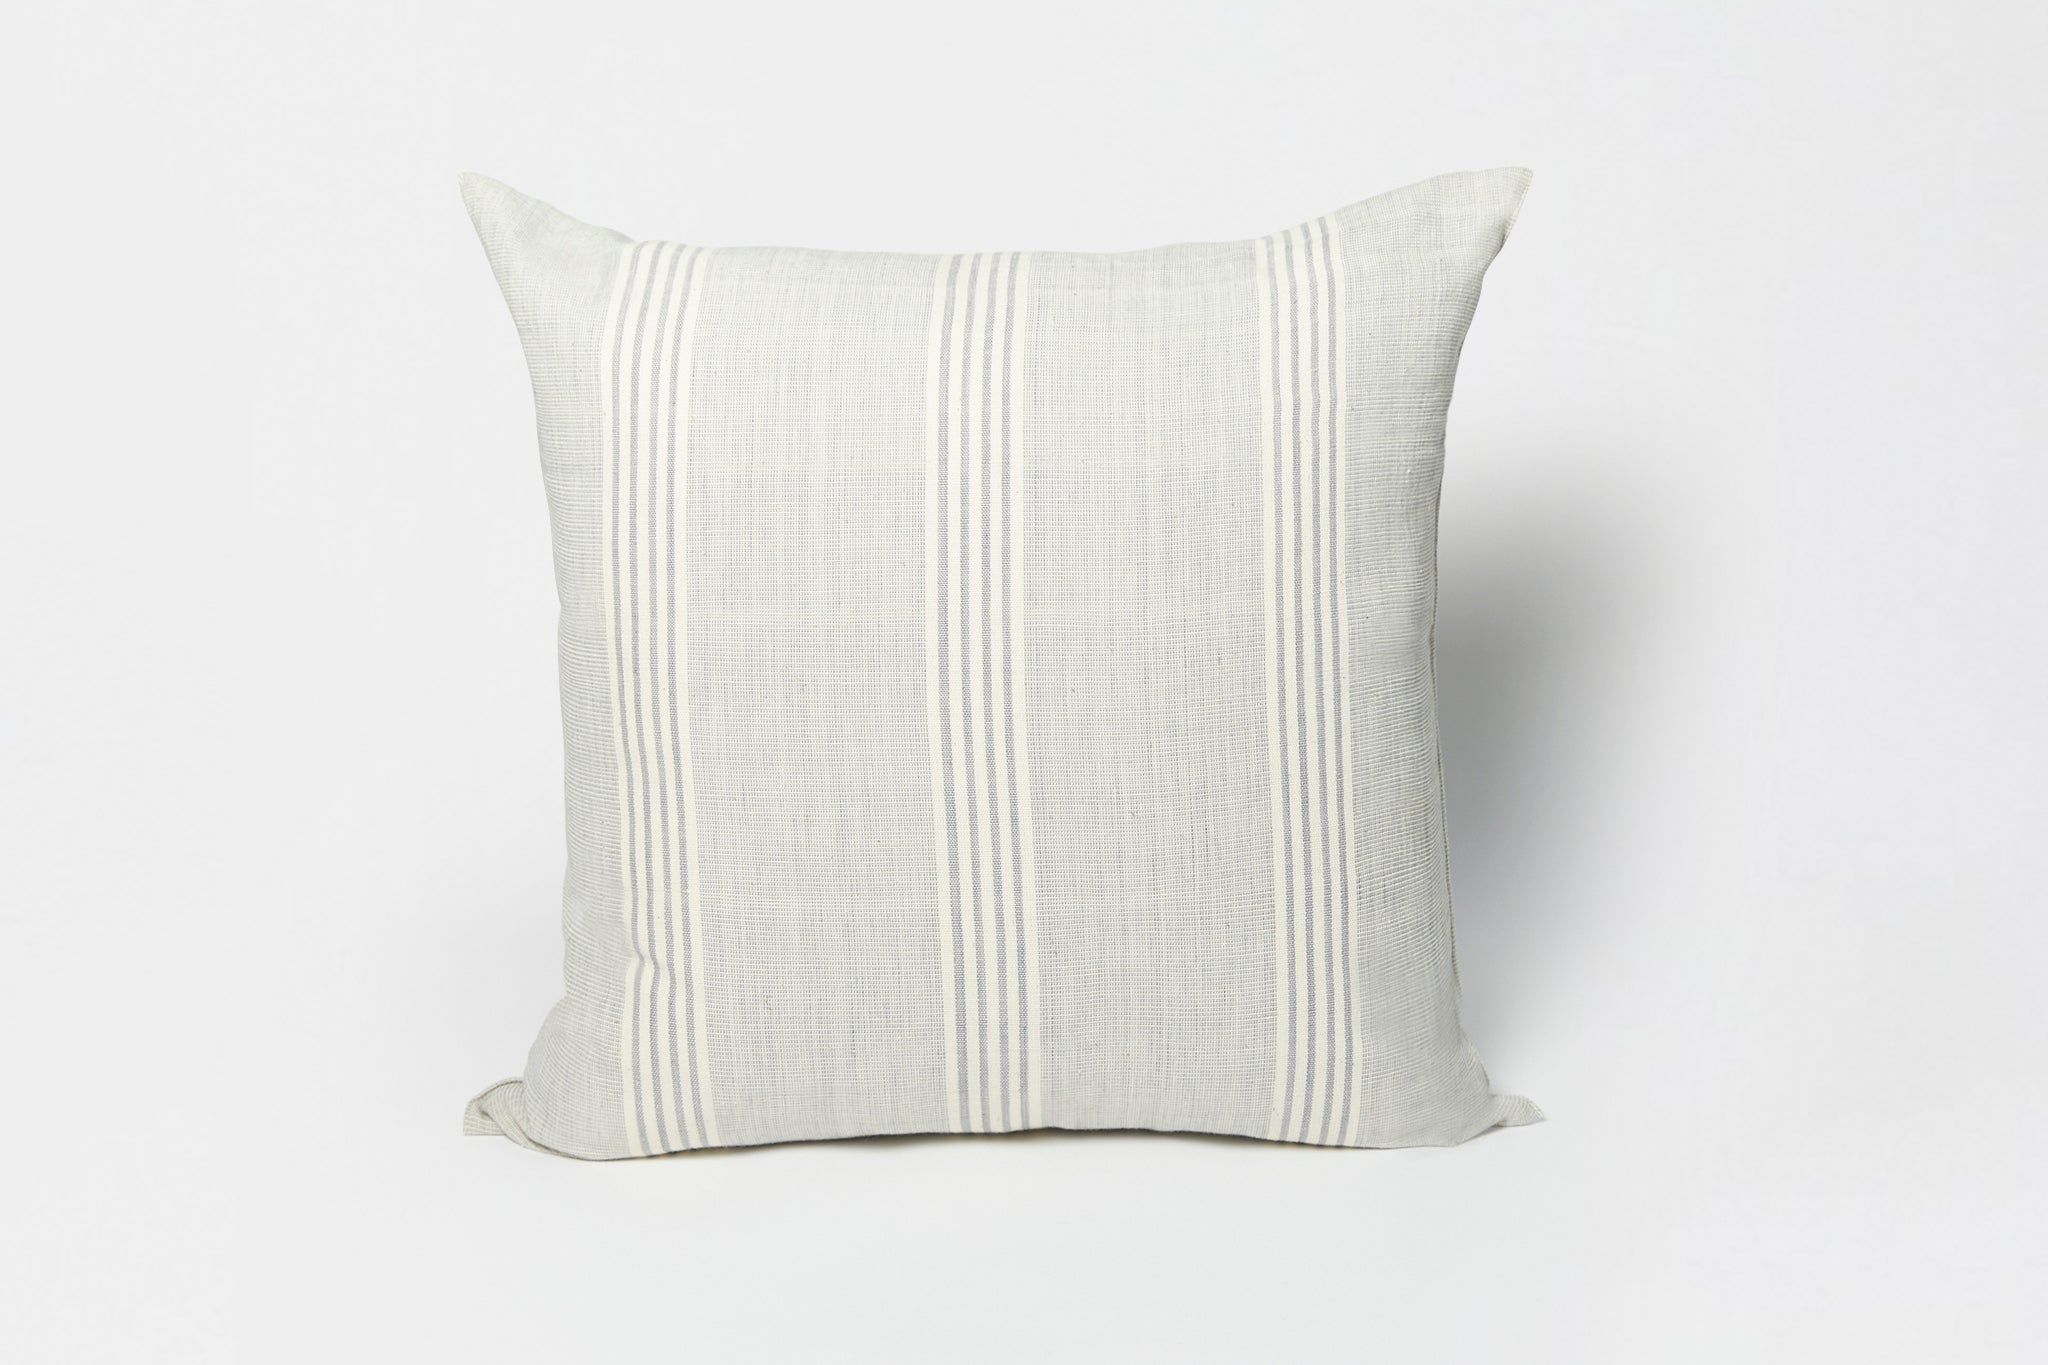 Tensira 20 x 20 Pillow Light Blue Stripe